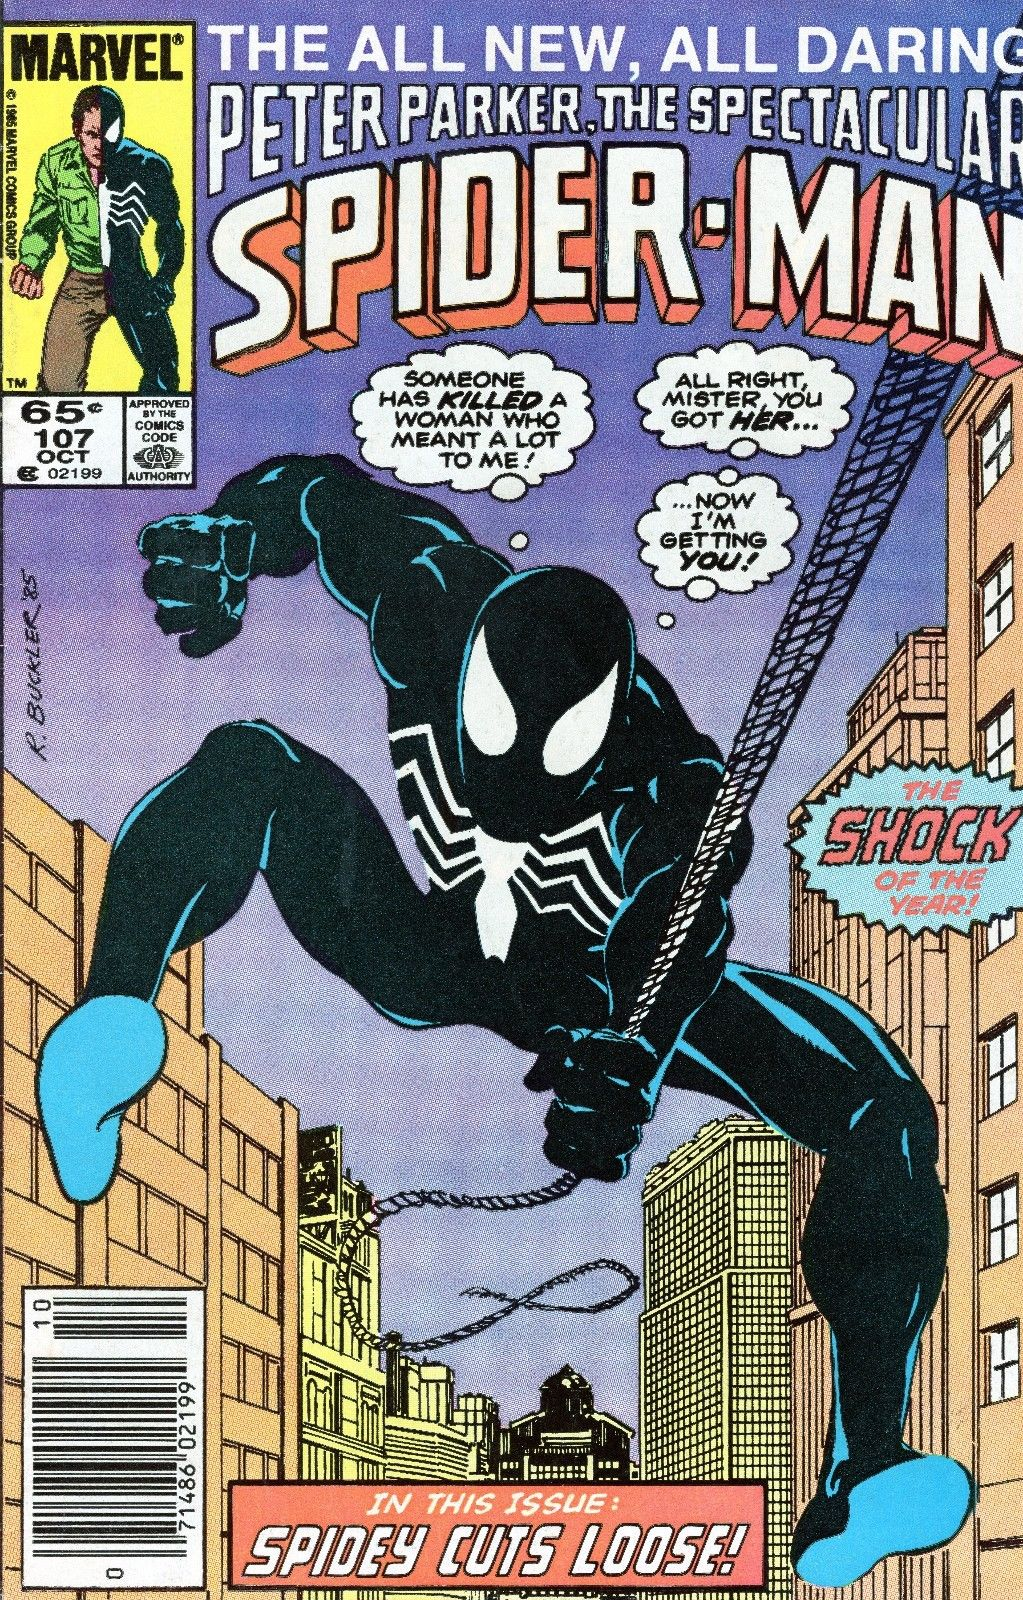 Peter Parker: The Spectacular Spider-Man #107